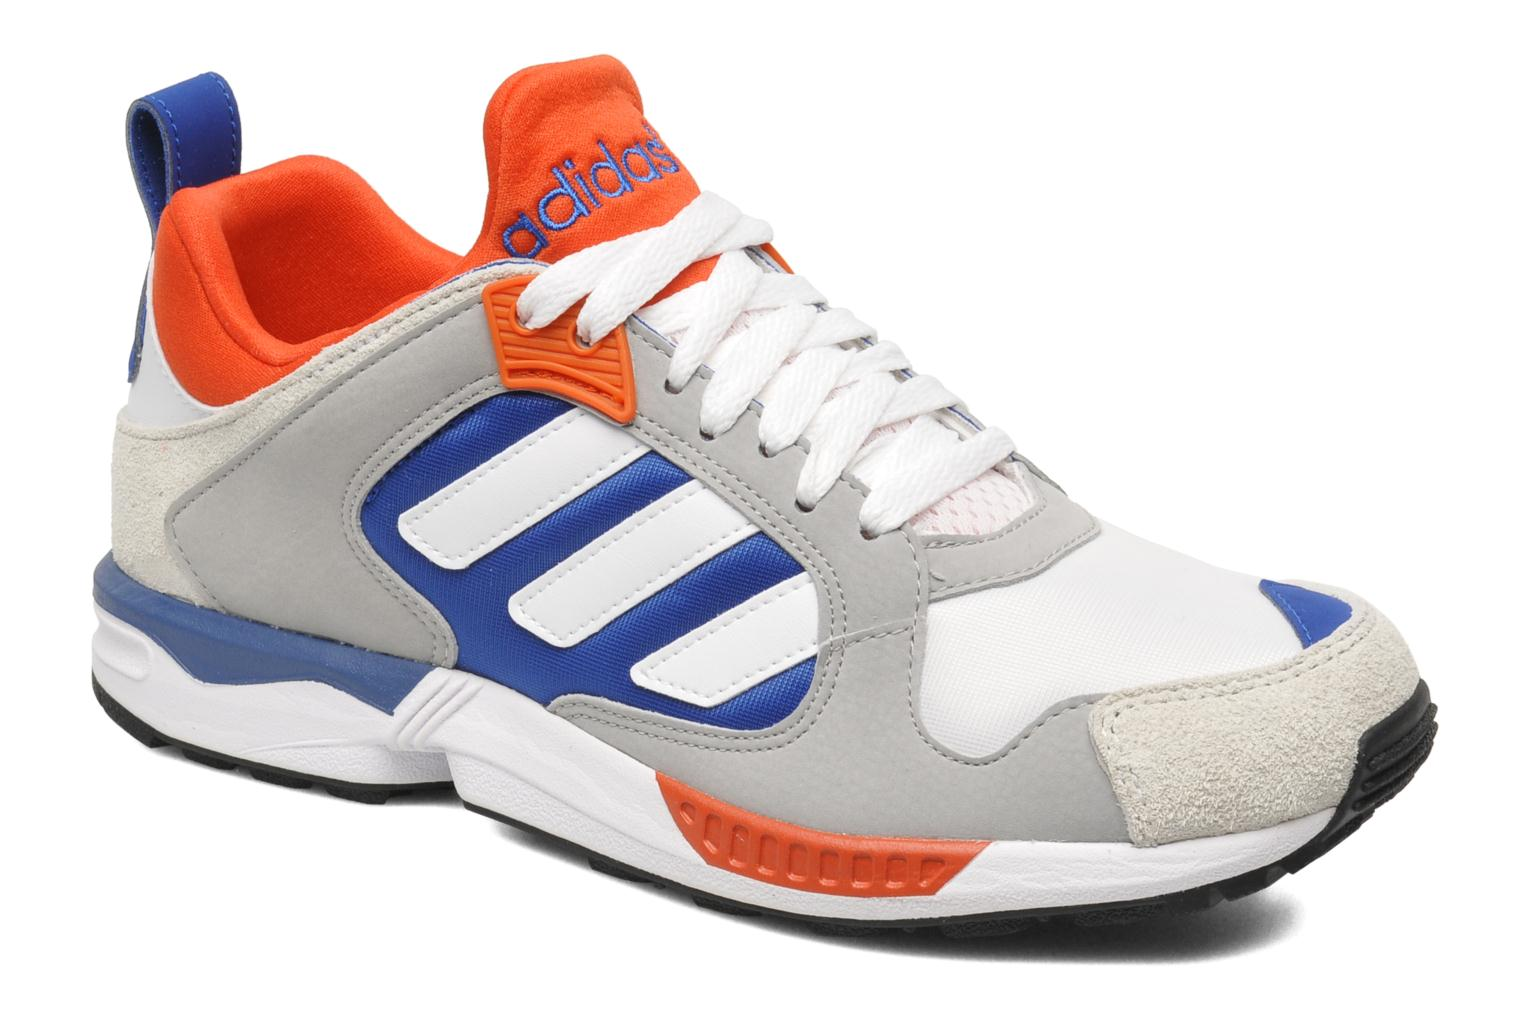 Sneakers Zx 5000 Rspn by Adidas Originals